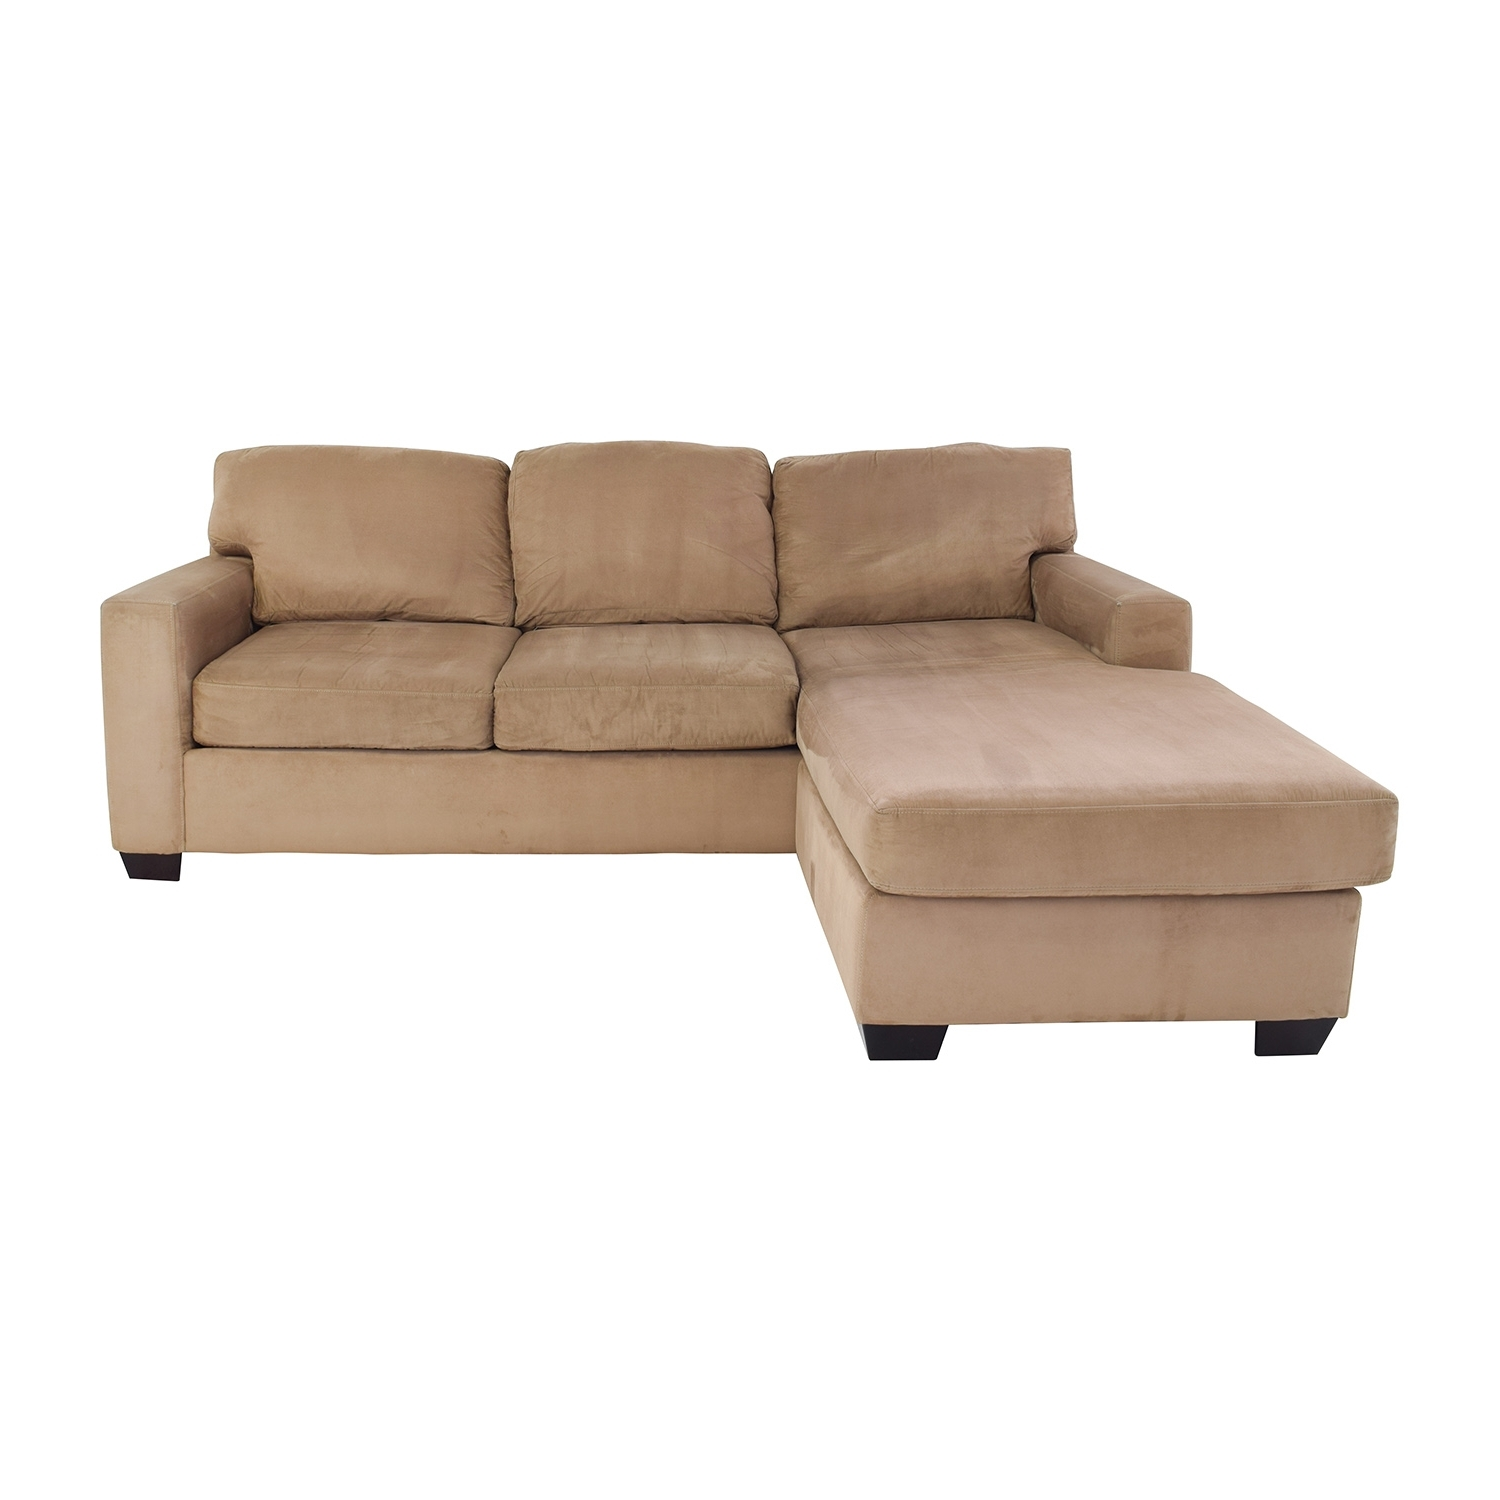 [%75% Off – Max Home Max Home Tan Sectional Chaise Sofa / Sofas Inside Popular Chaise Sofas|Chaise Sofas Regarding Fashionable 75% Off – Max Home Max Home Tan Sectional Chaise Sofa / Sofas|Popular Chaise Sofas With Regard To 75% Off – Max Home Max Home Tan Sectional Chaise Sofa / Sofas|Well Known 75% Off – Max Home Max Home Tan Sectional Chaise Sofa / Sofas With Regard To Chaise Sofas%] (View 1 of 15)